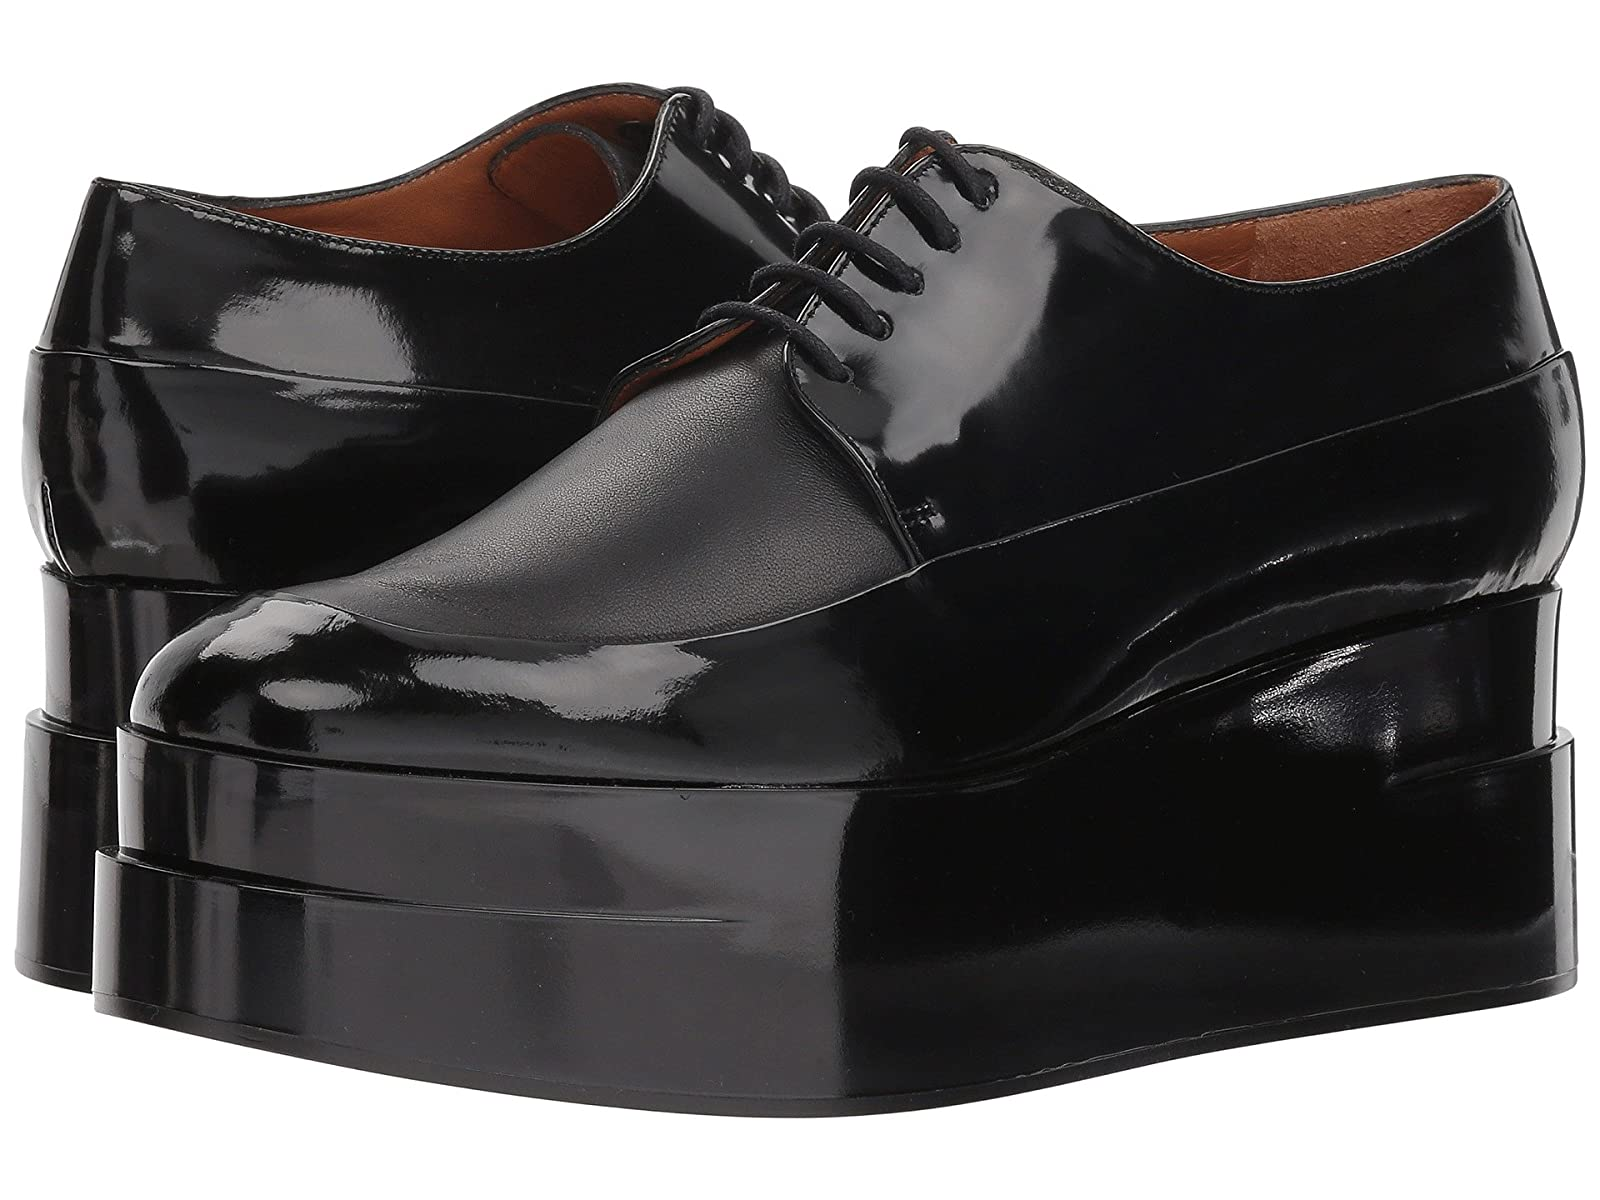 Clergerie LucieAtmospheric grades have affordable shoes